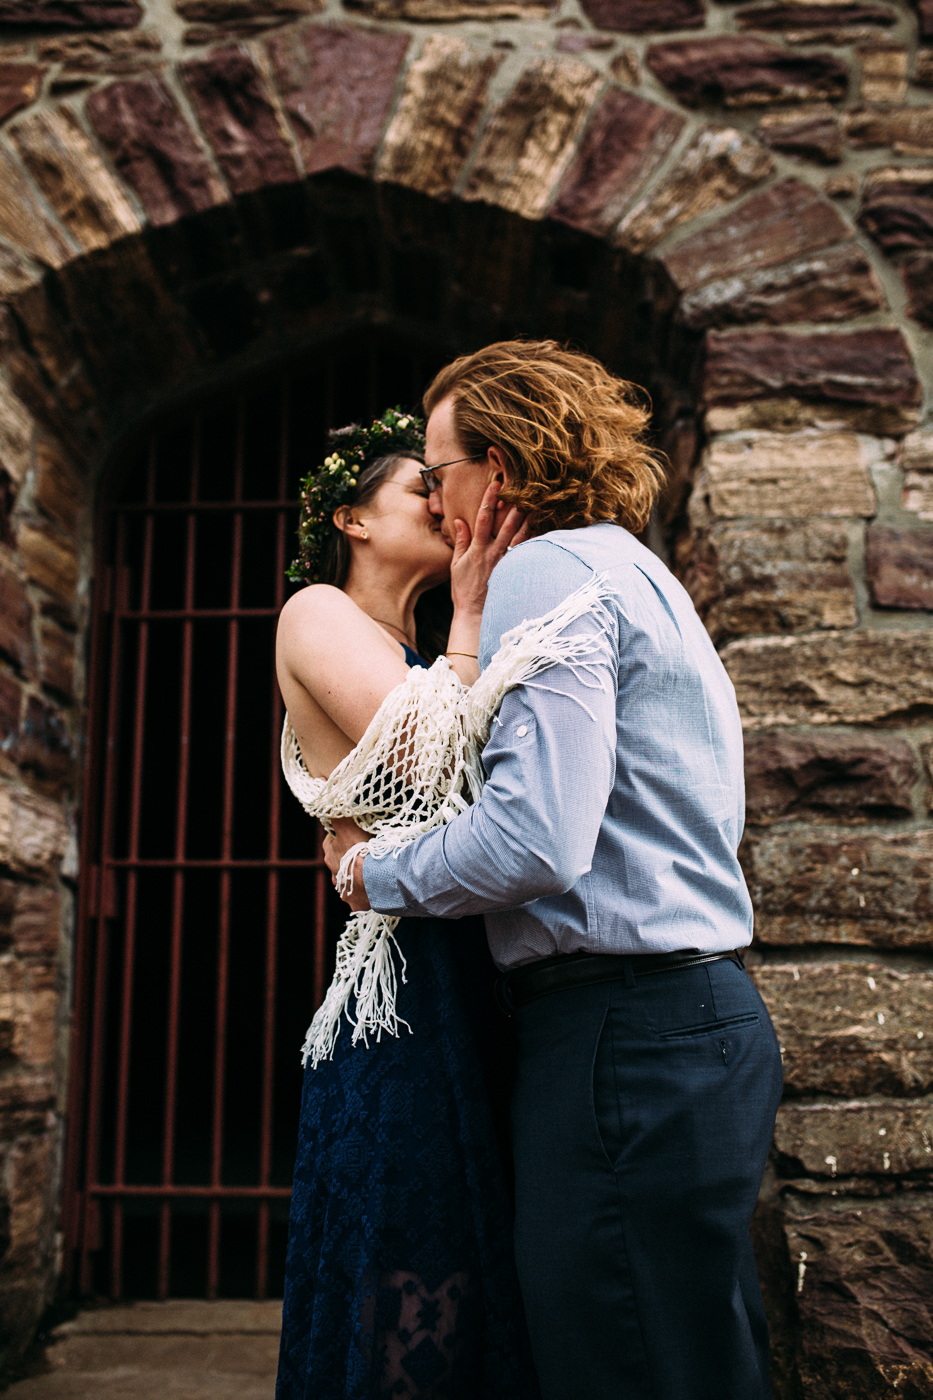 erinwheat photography-jplaurenelopement6642